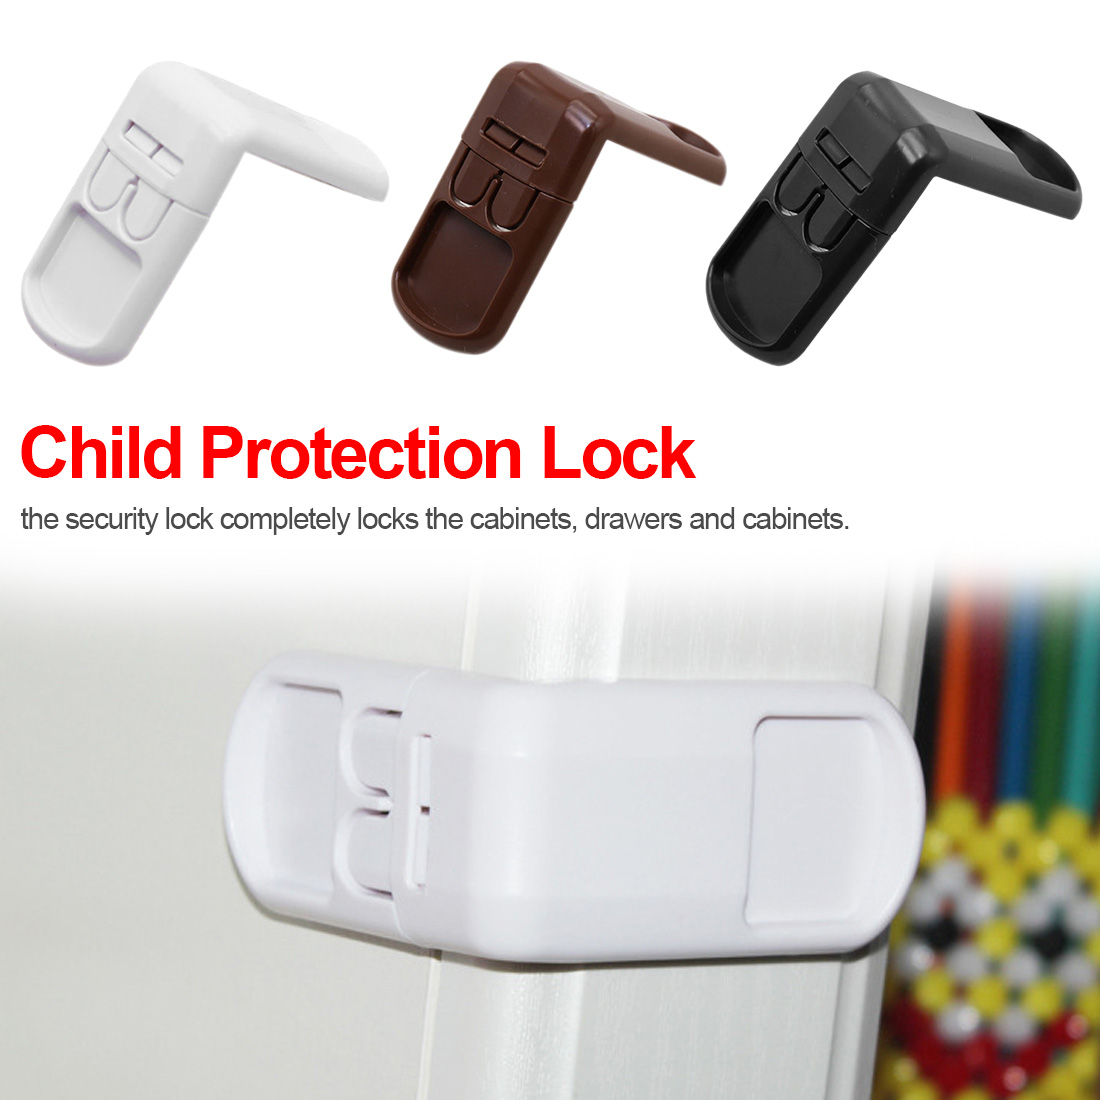 Child Lock Protection Of Children Locking Doors For Children's Safety Kids Safety Plastic Lock For Child Infant Baby Locks